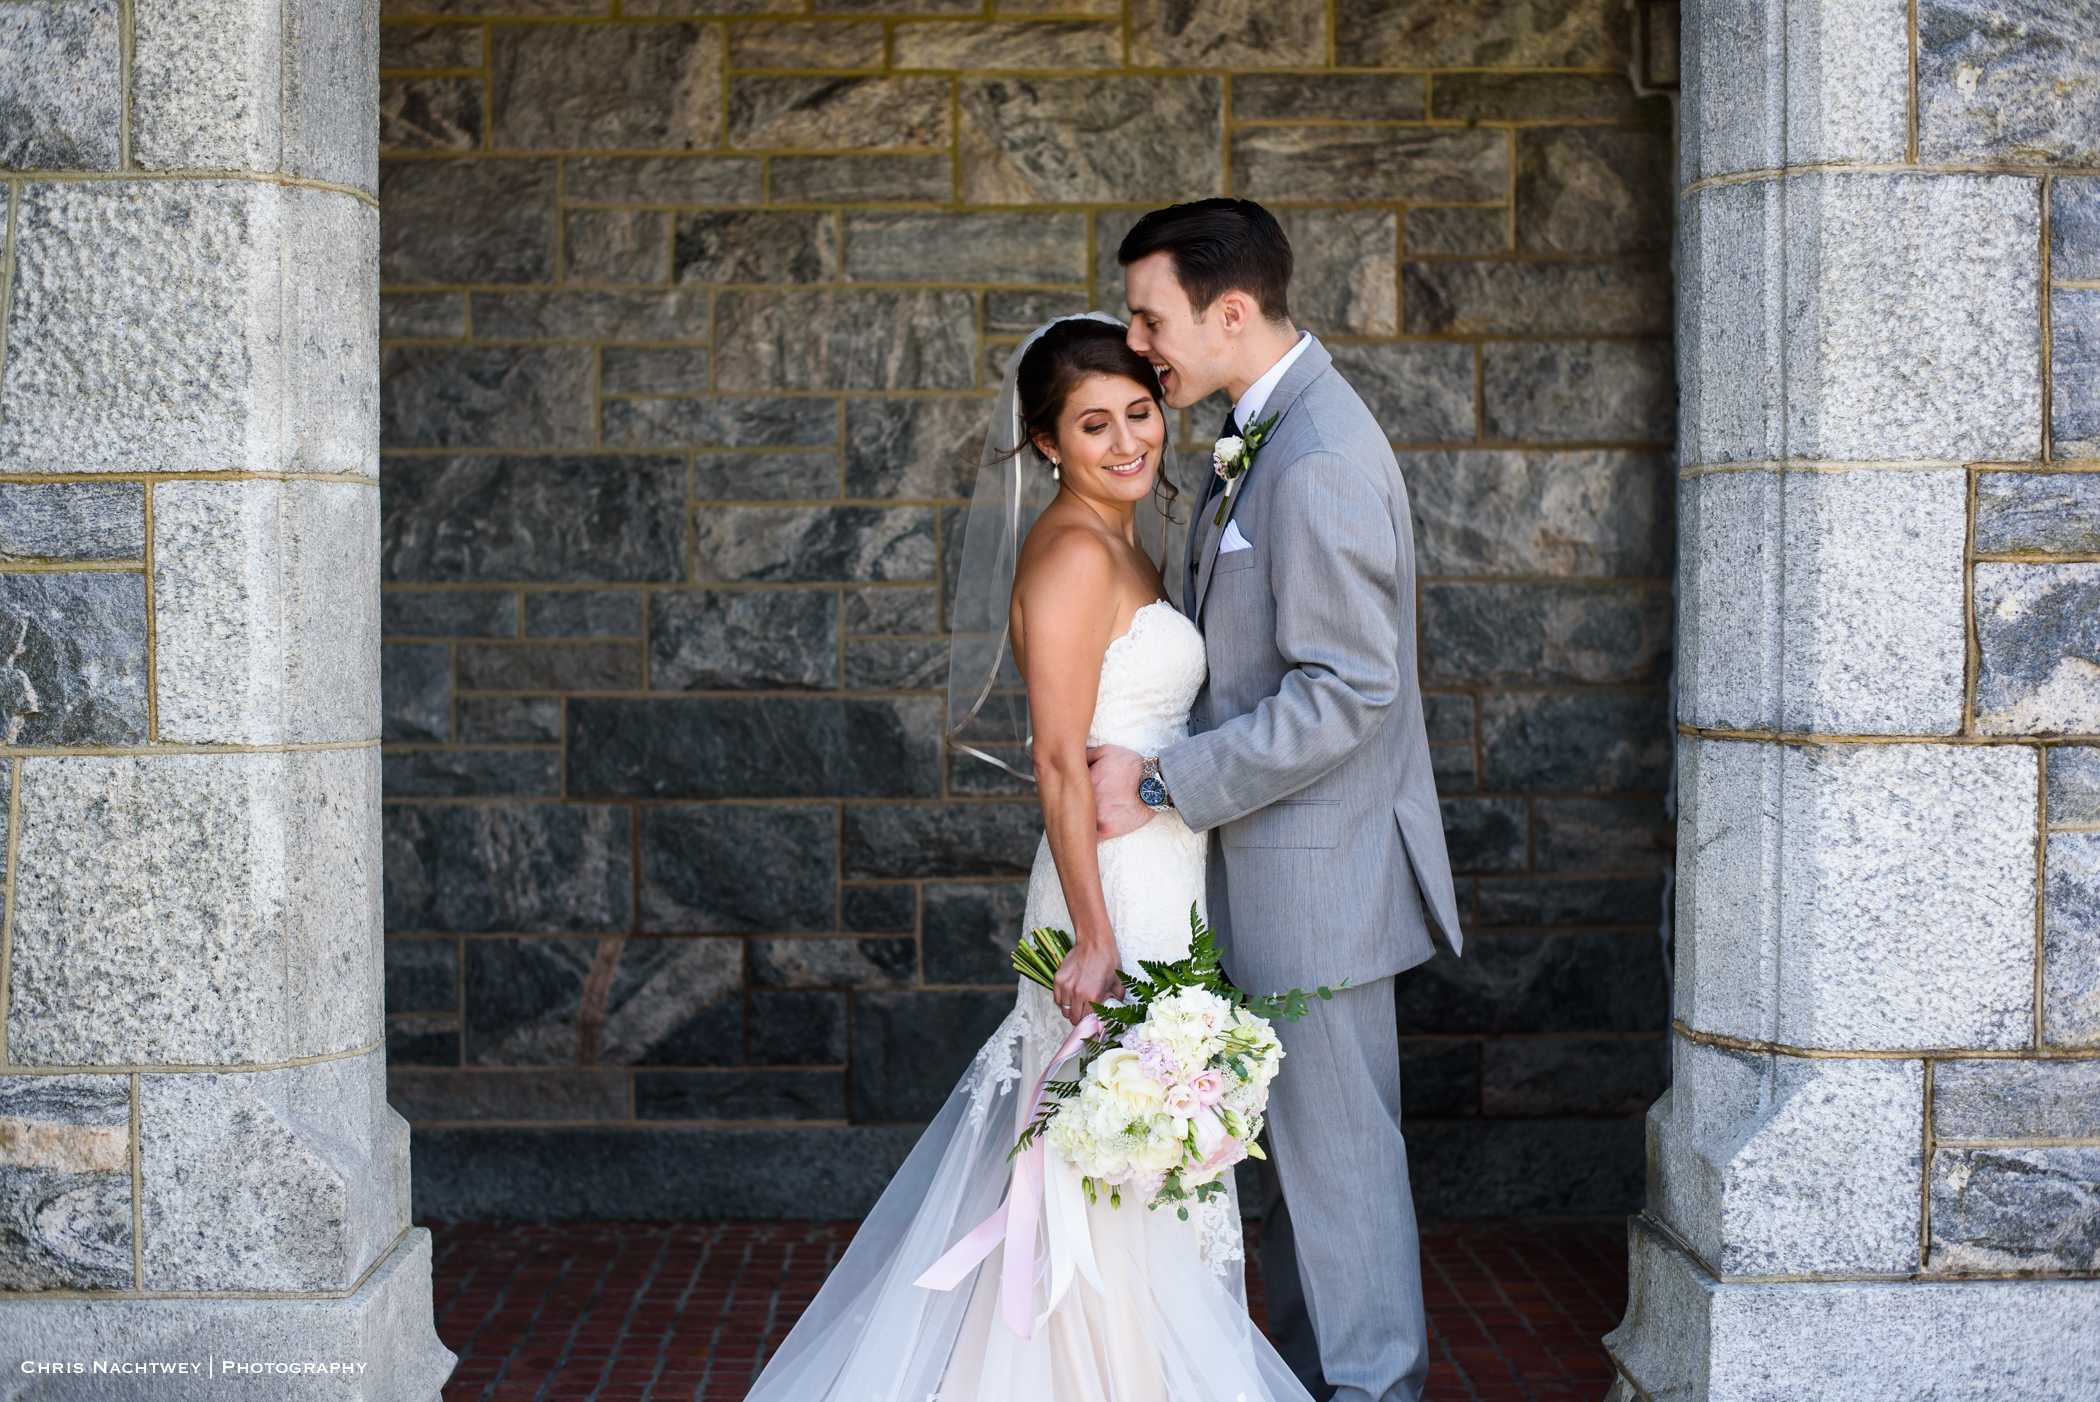 wedding-branford-house-groton-connecticut-photos-chris-nachtwey-amanda-todd-2018-14.jpg